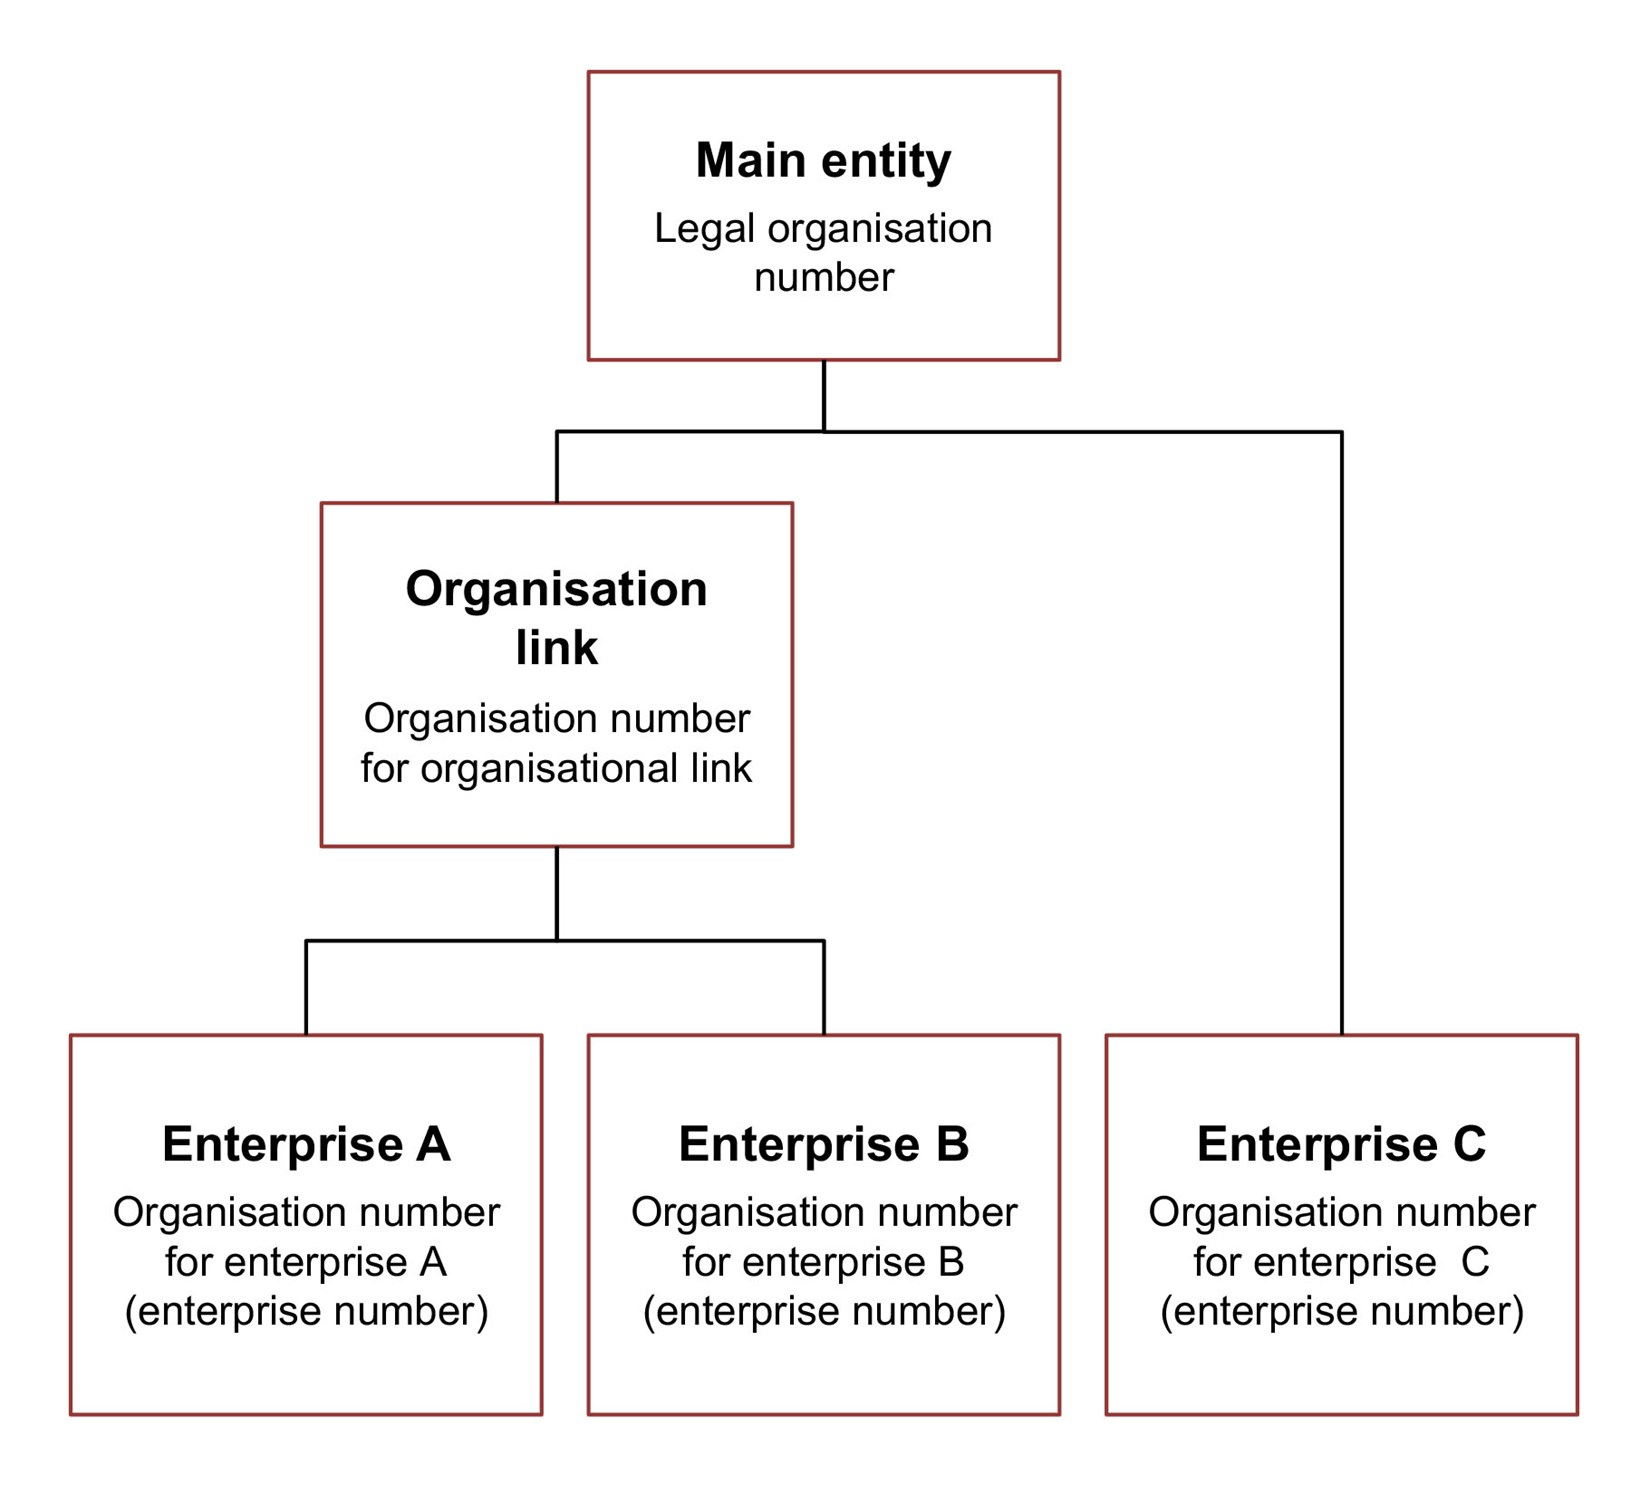 Diagram. Specify the legal organisation number for the main entity and the organisation number for enterprise, for enterprise C. Specify the organisation number for organisational link and organisation number for enterprise, for enterprises A and B. The text in the article explains this in more detail.